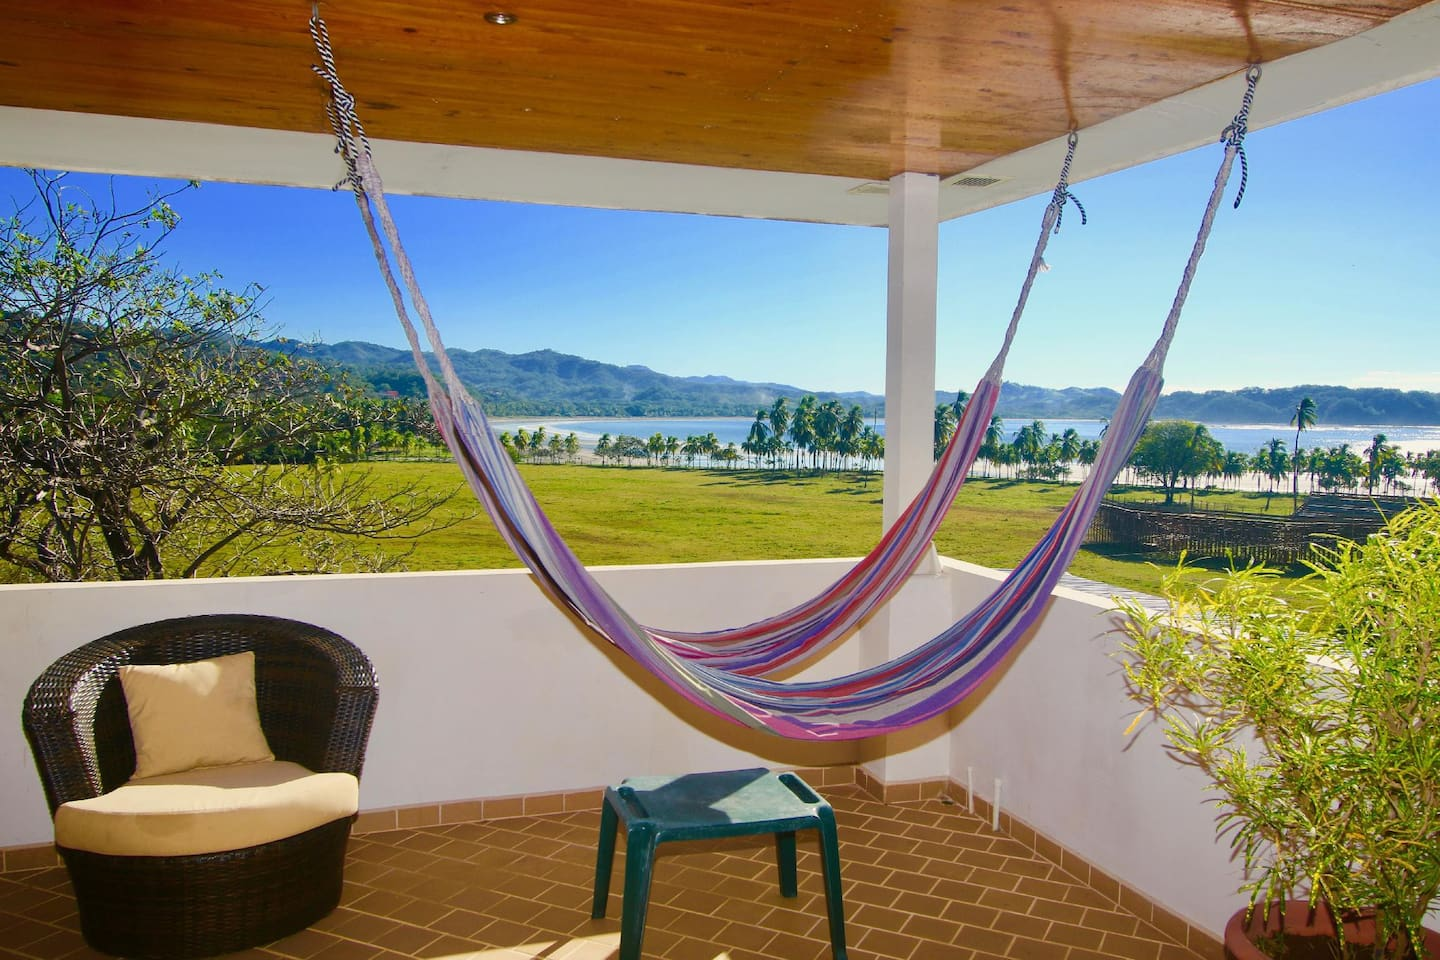 Congo Lounge - amazing views and breezes, for all guests located on the fourth floor.